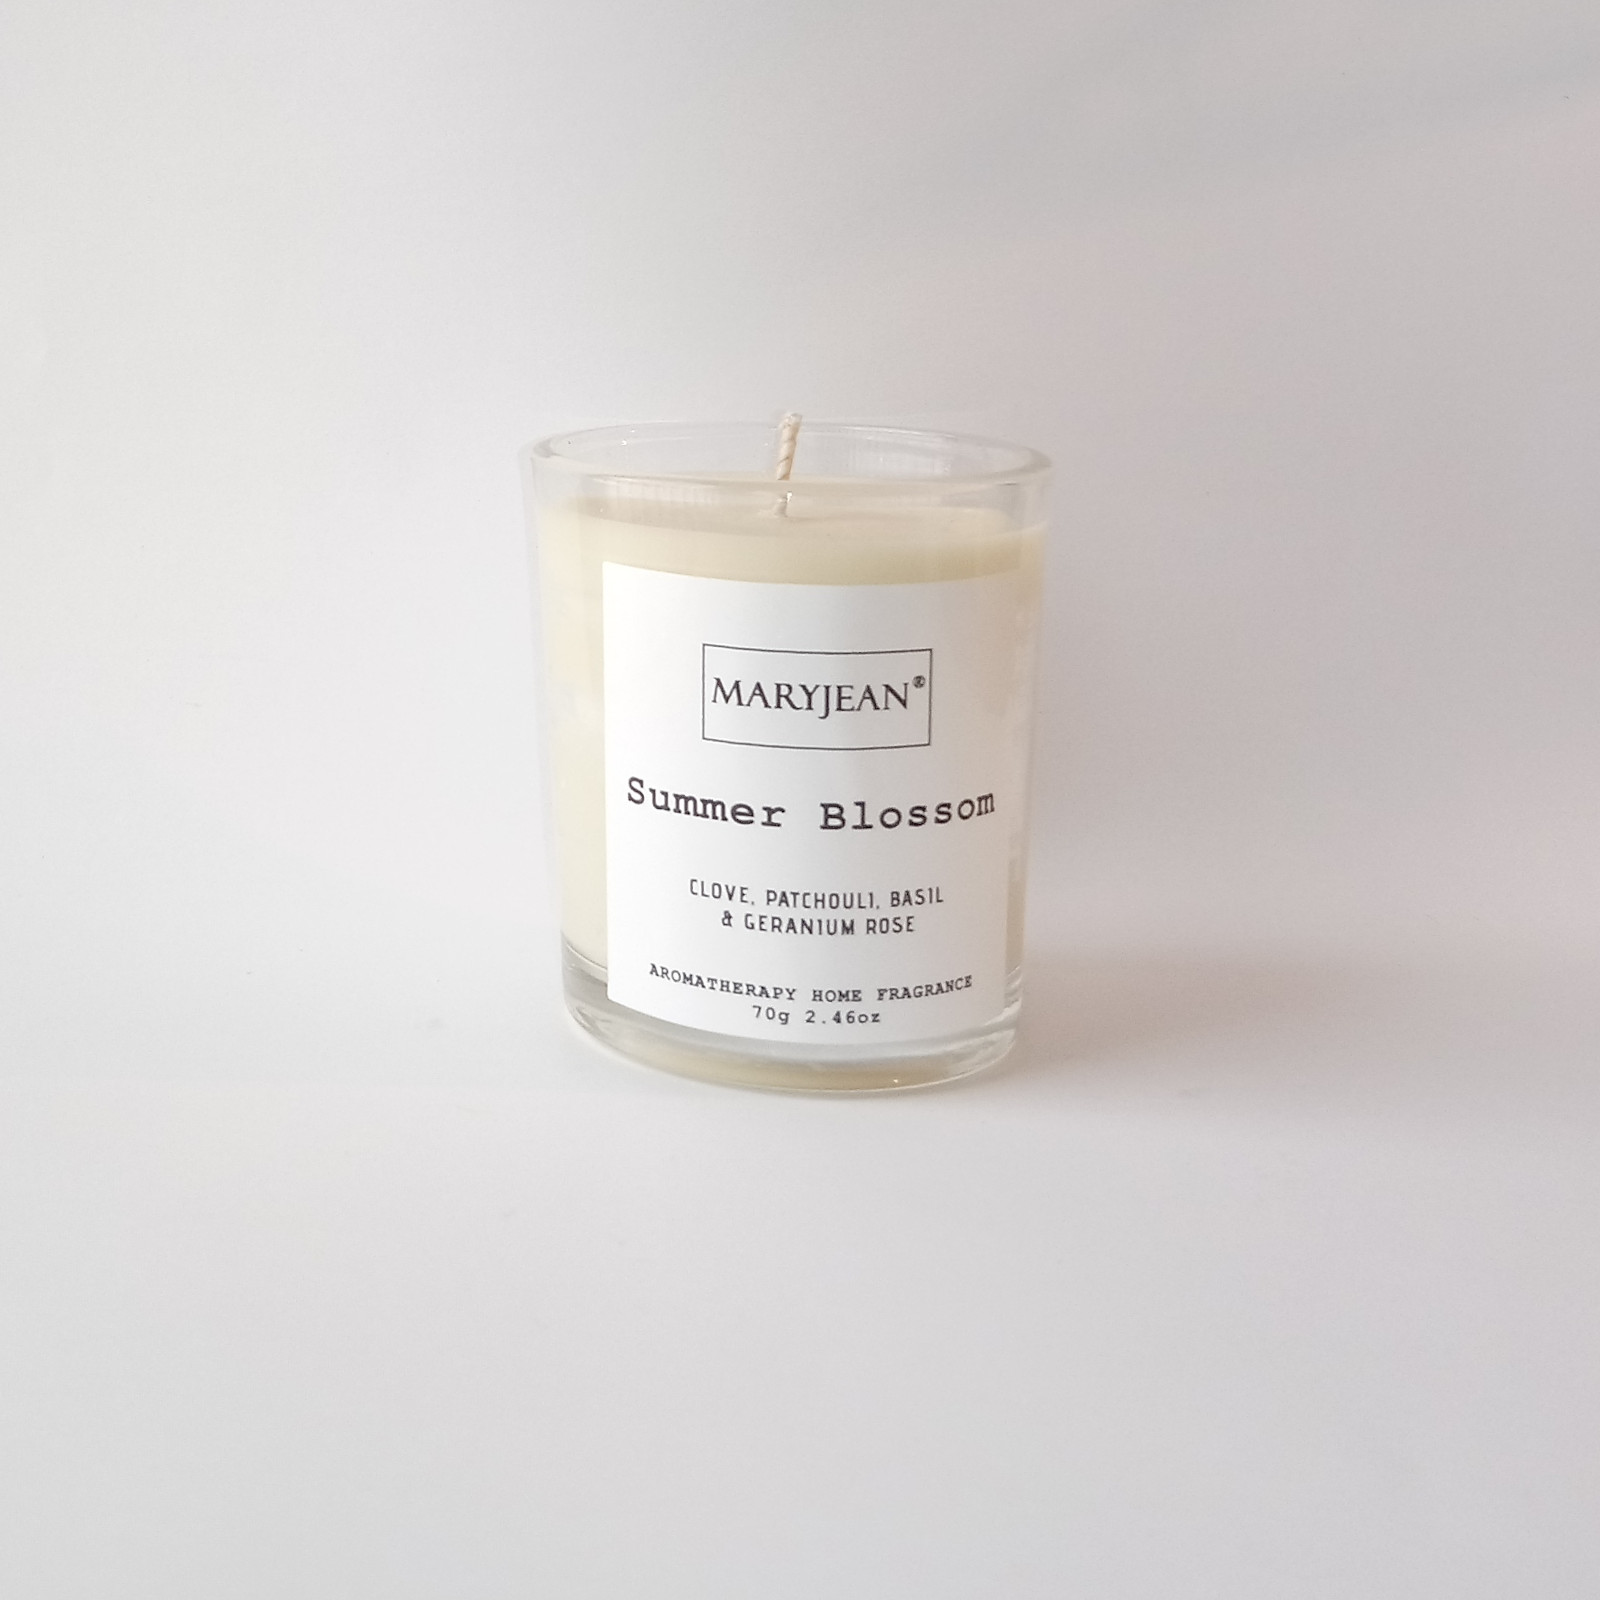 Natural Home Season's Summer Fragrance Hand Poured Small Luxury Soy Candle Warmest season of the year and a time people of carefree and fun long evenings on the patio with a customary candle for mood and pleasure